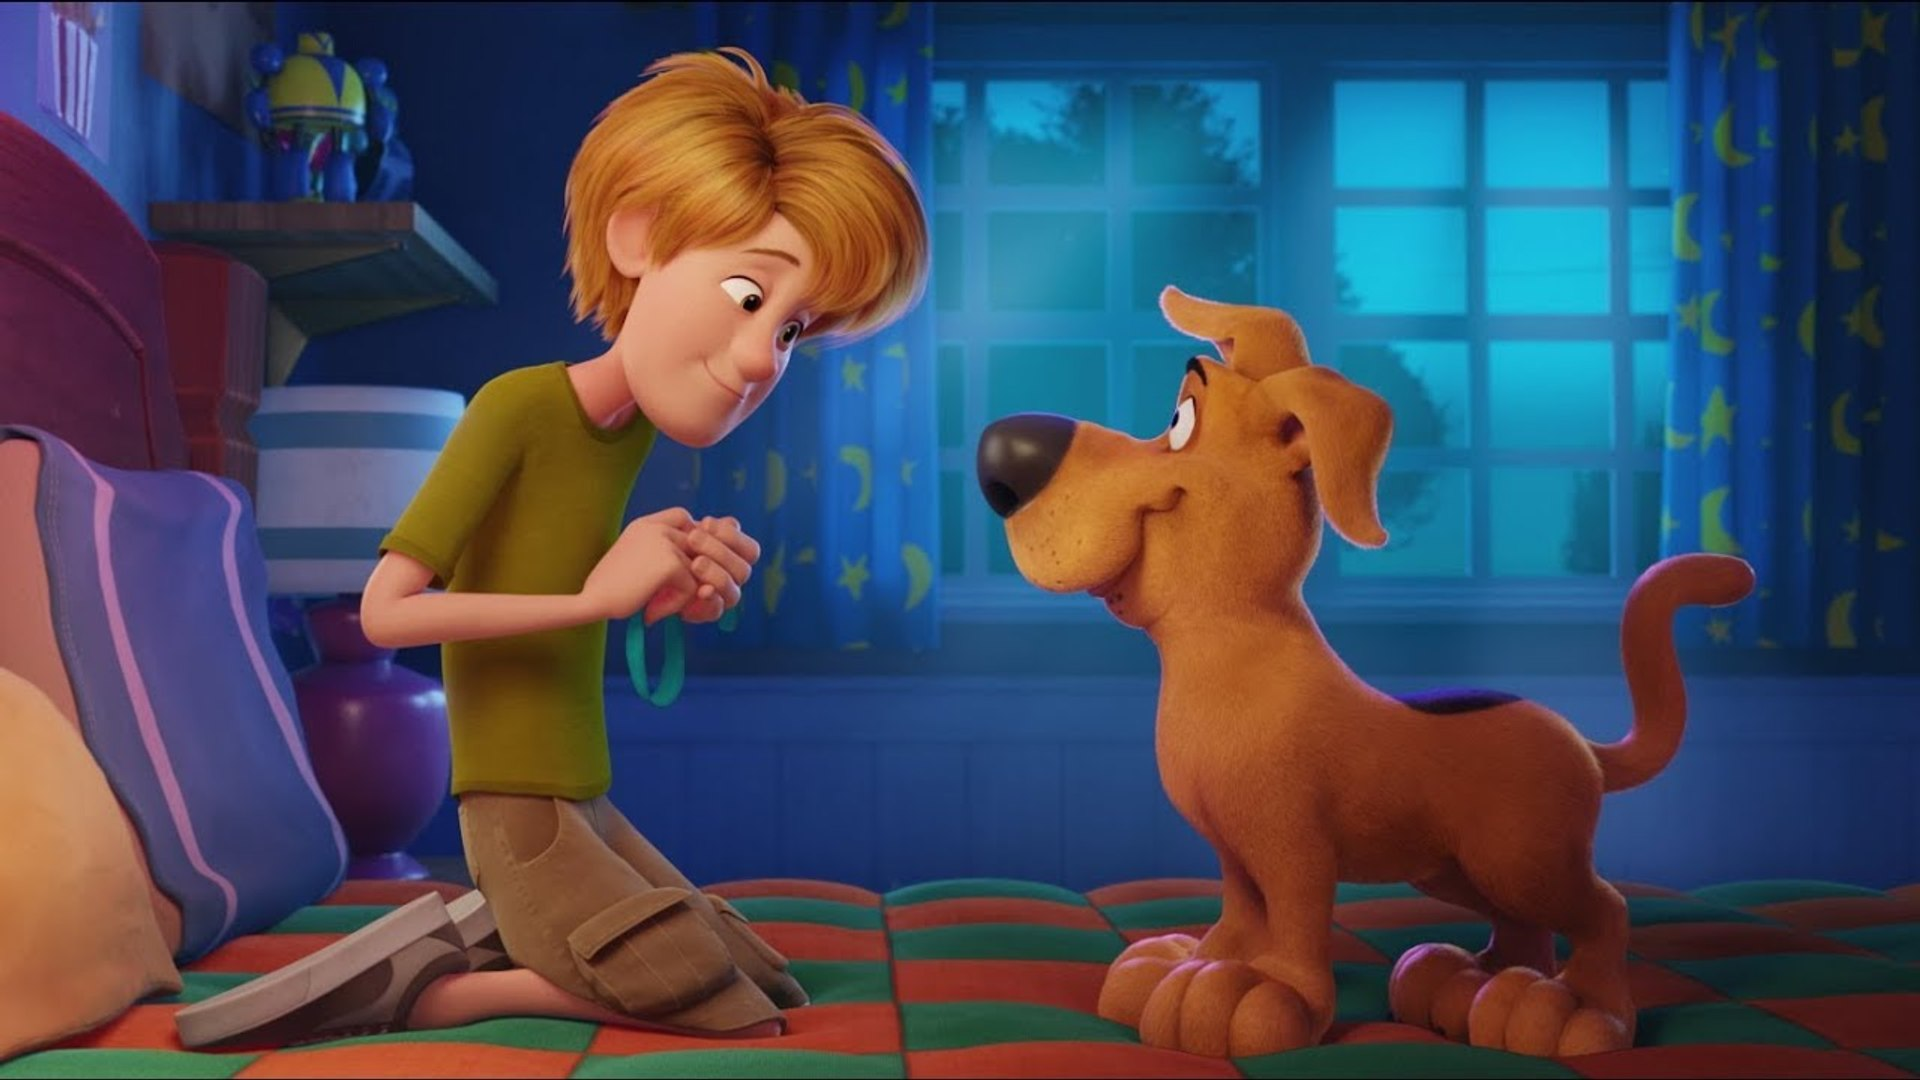 Scooby Film Le Nouveau Scooby Doo Video Dailymotion